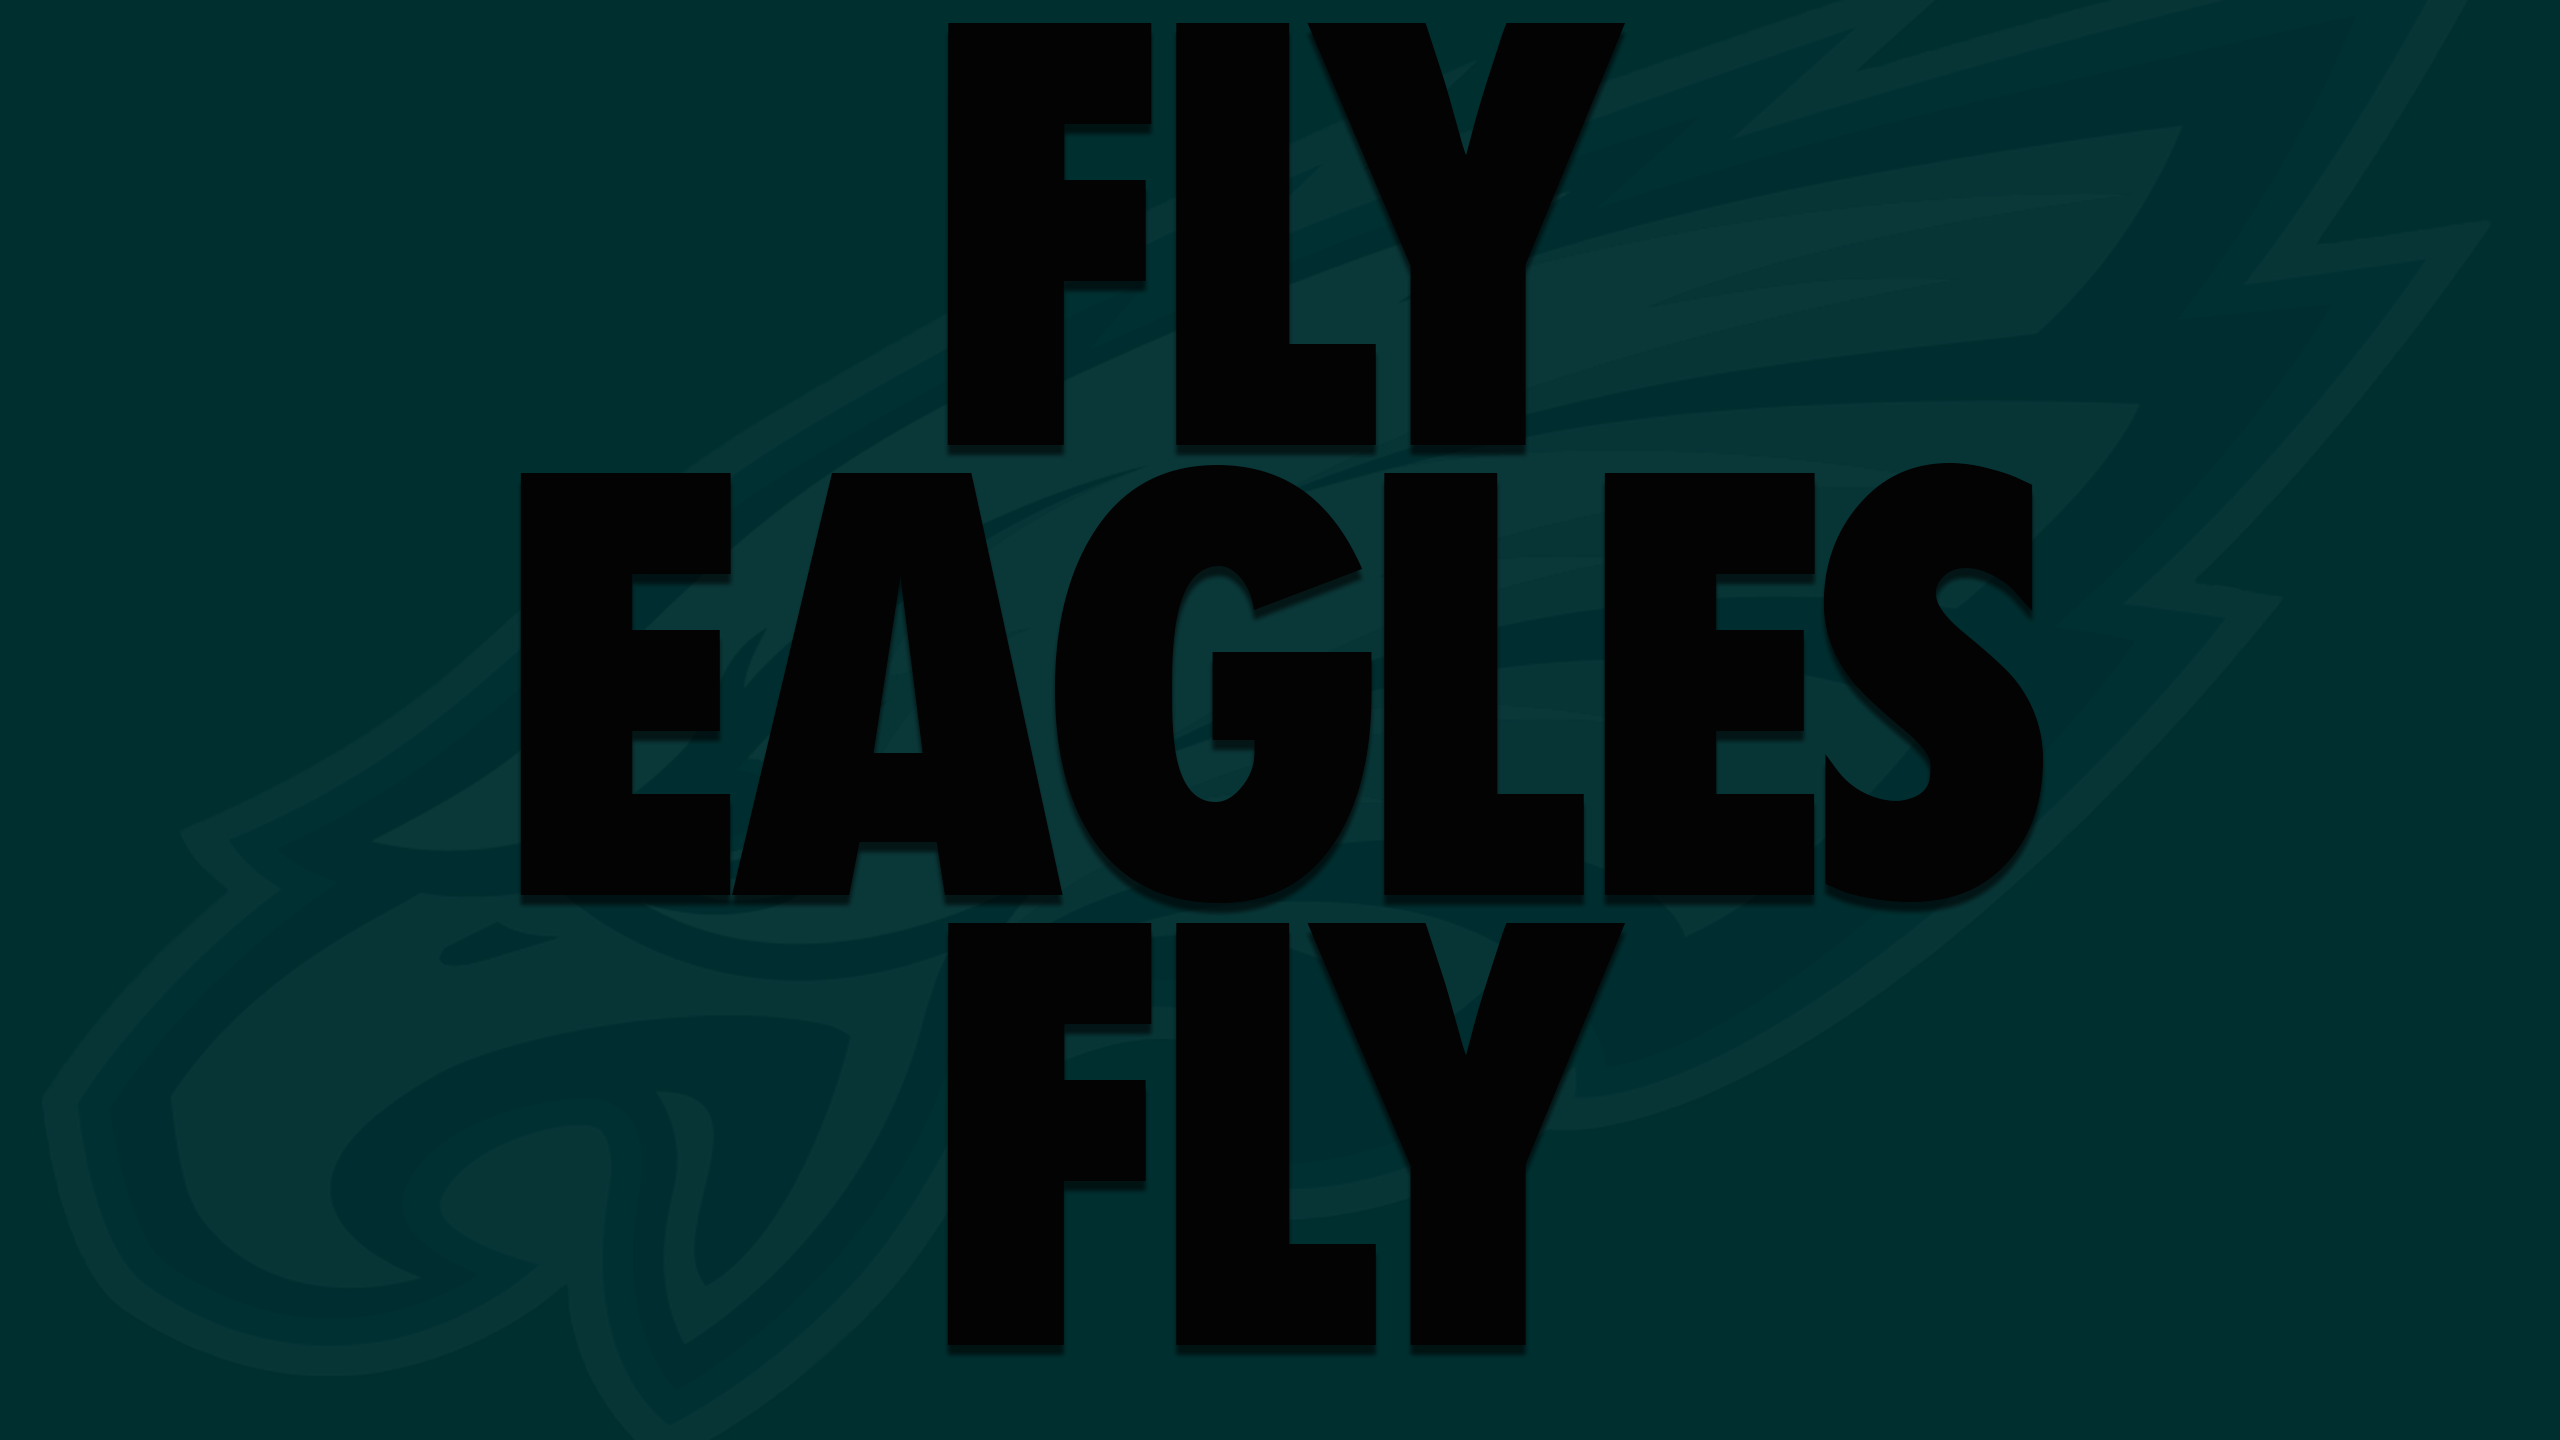 Free Philadelphia Eagles Wallpapers Group